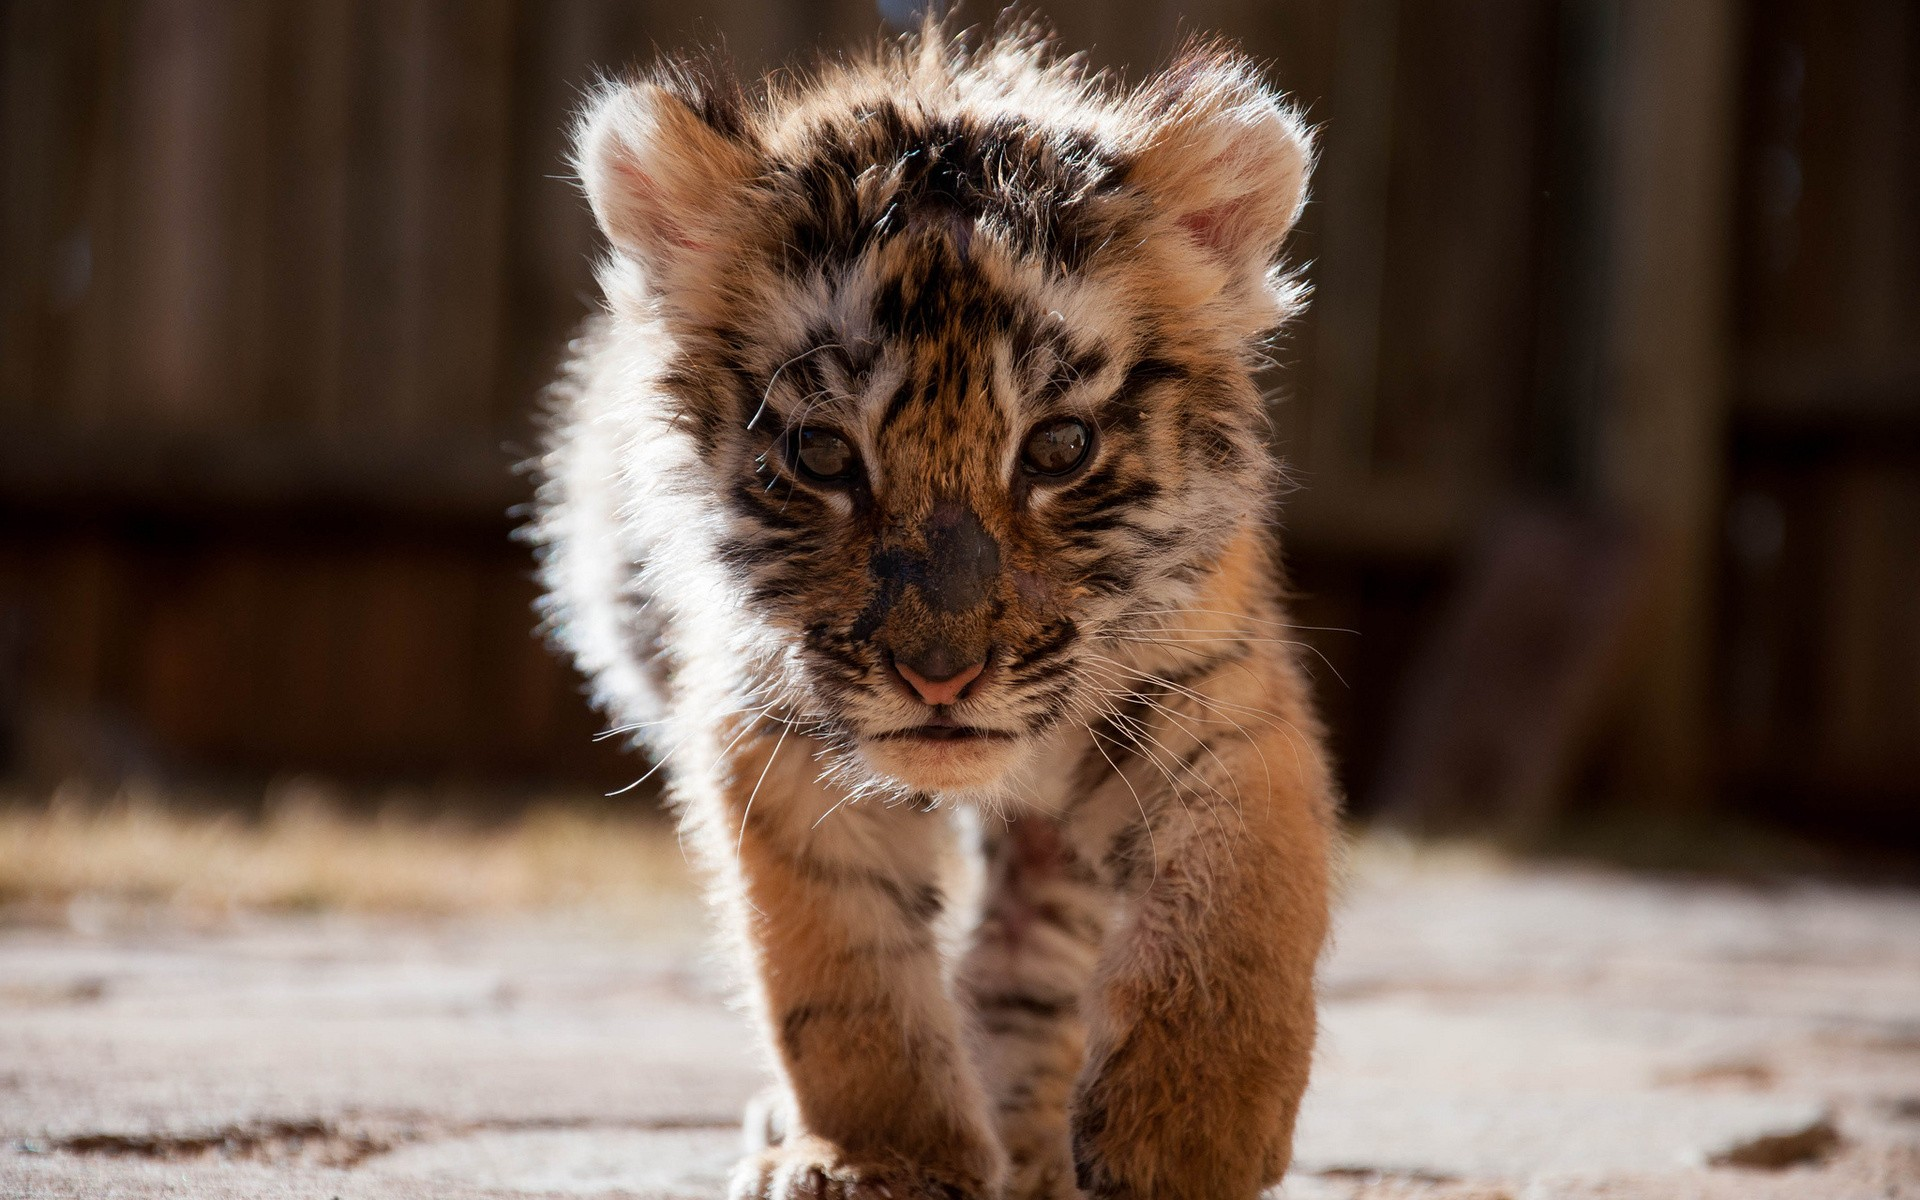 Baby tigers face - photo#9